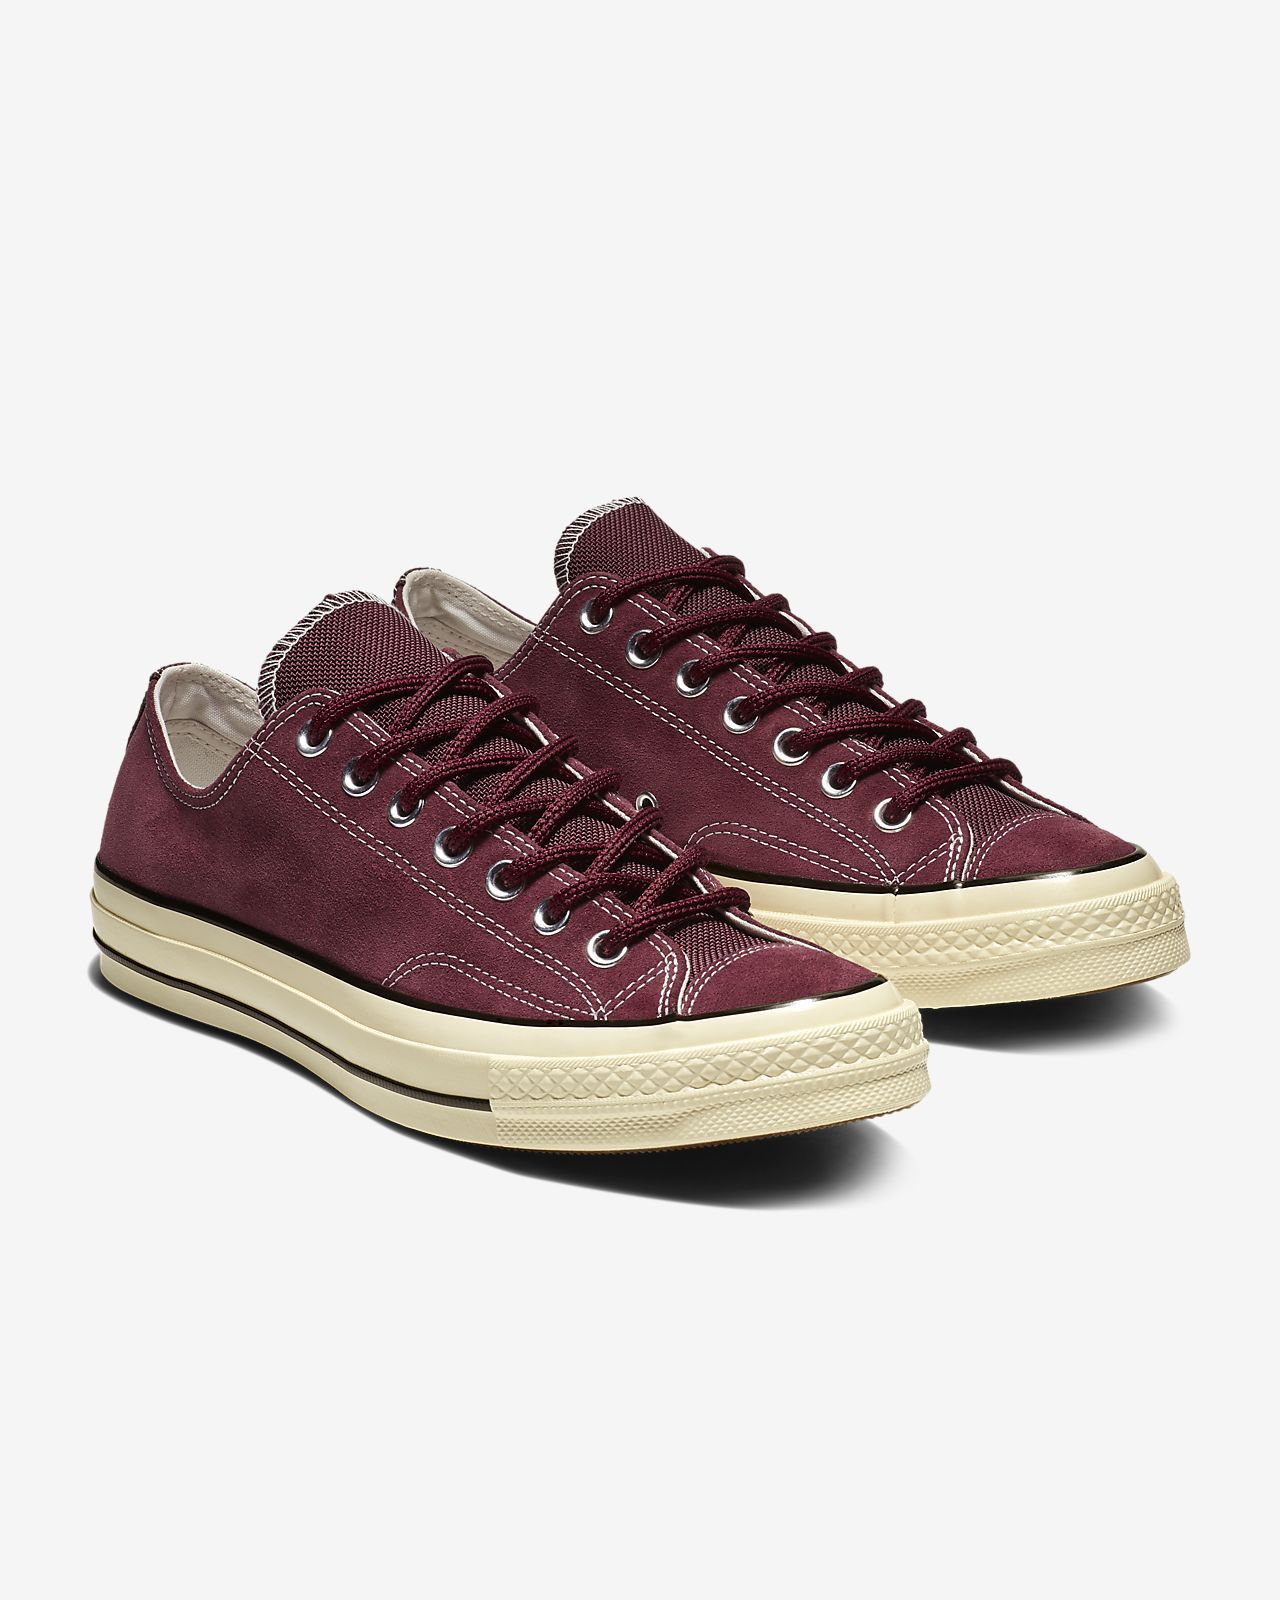 fb31c73abb11 Converse Chuck 70 Base Camp Suede Low Top Unisex Shoe